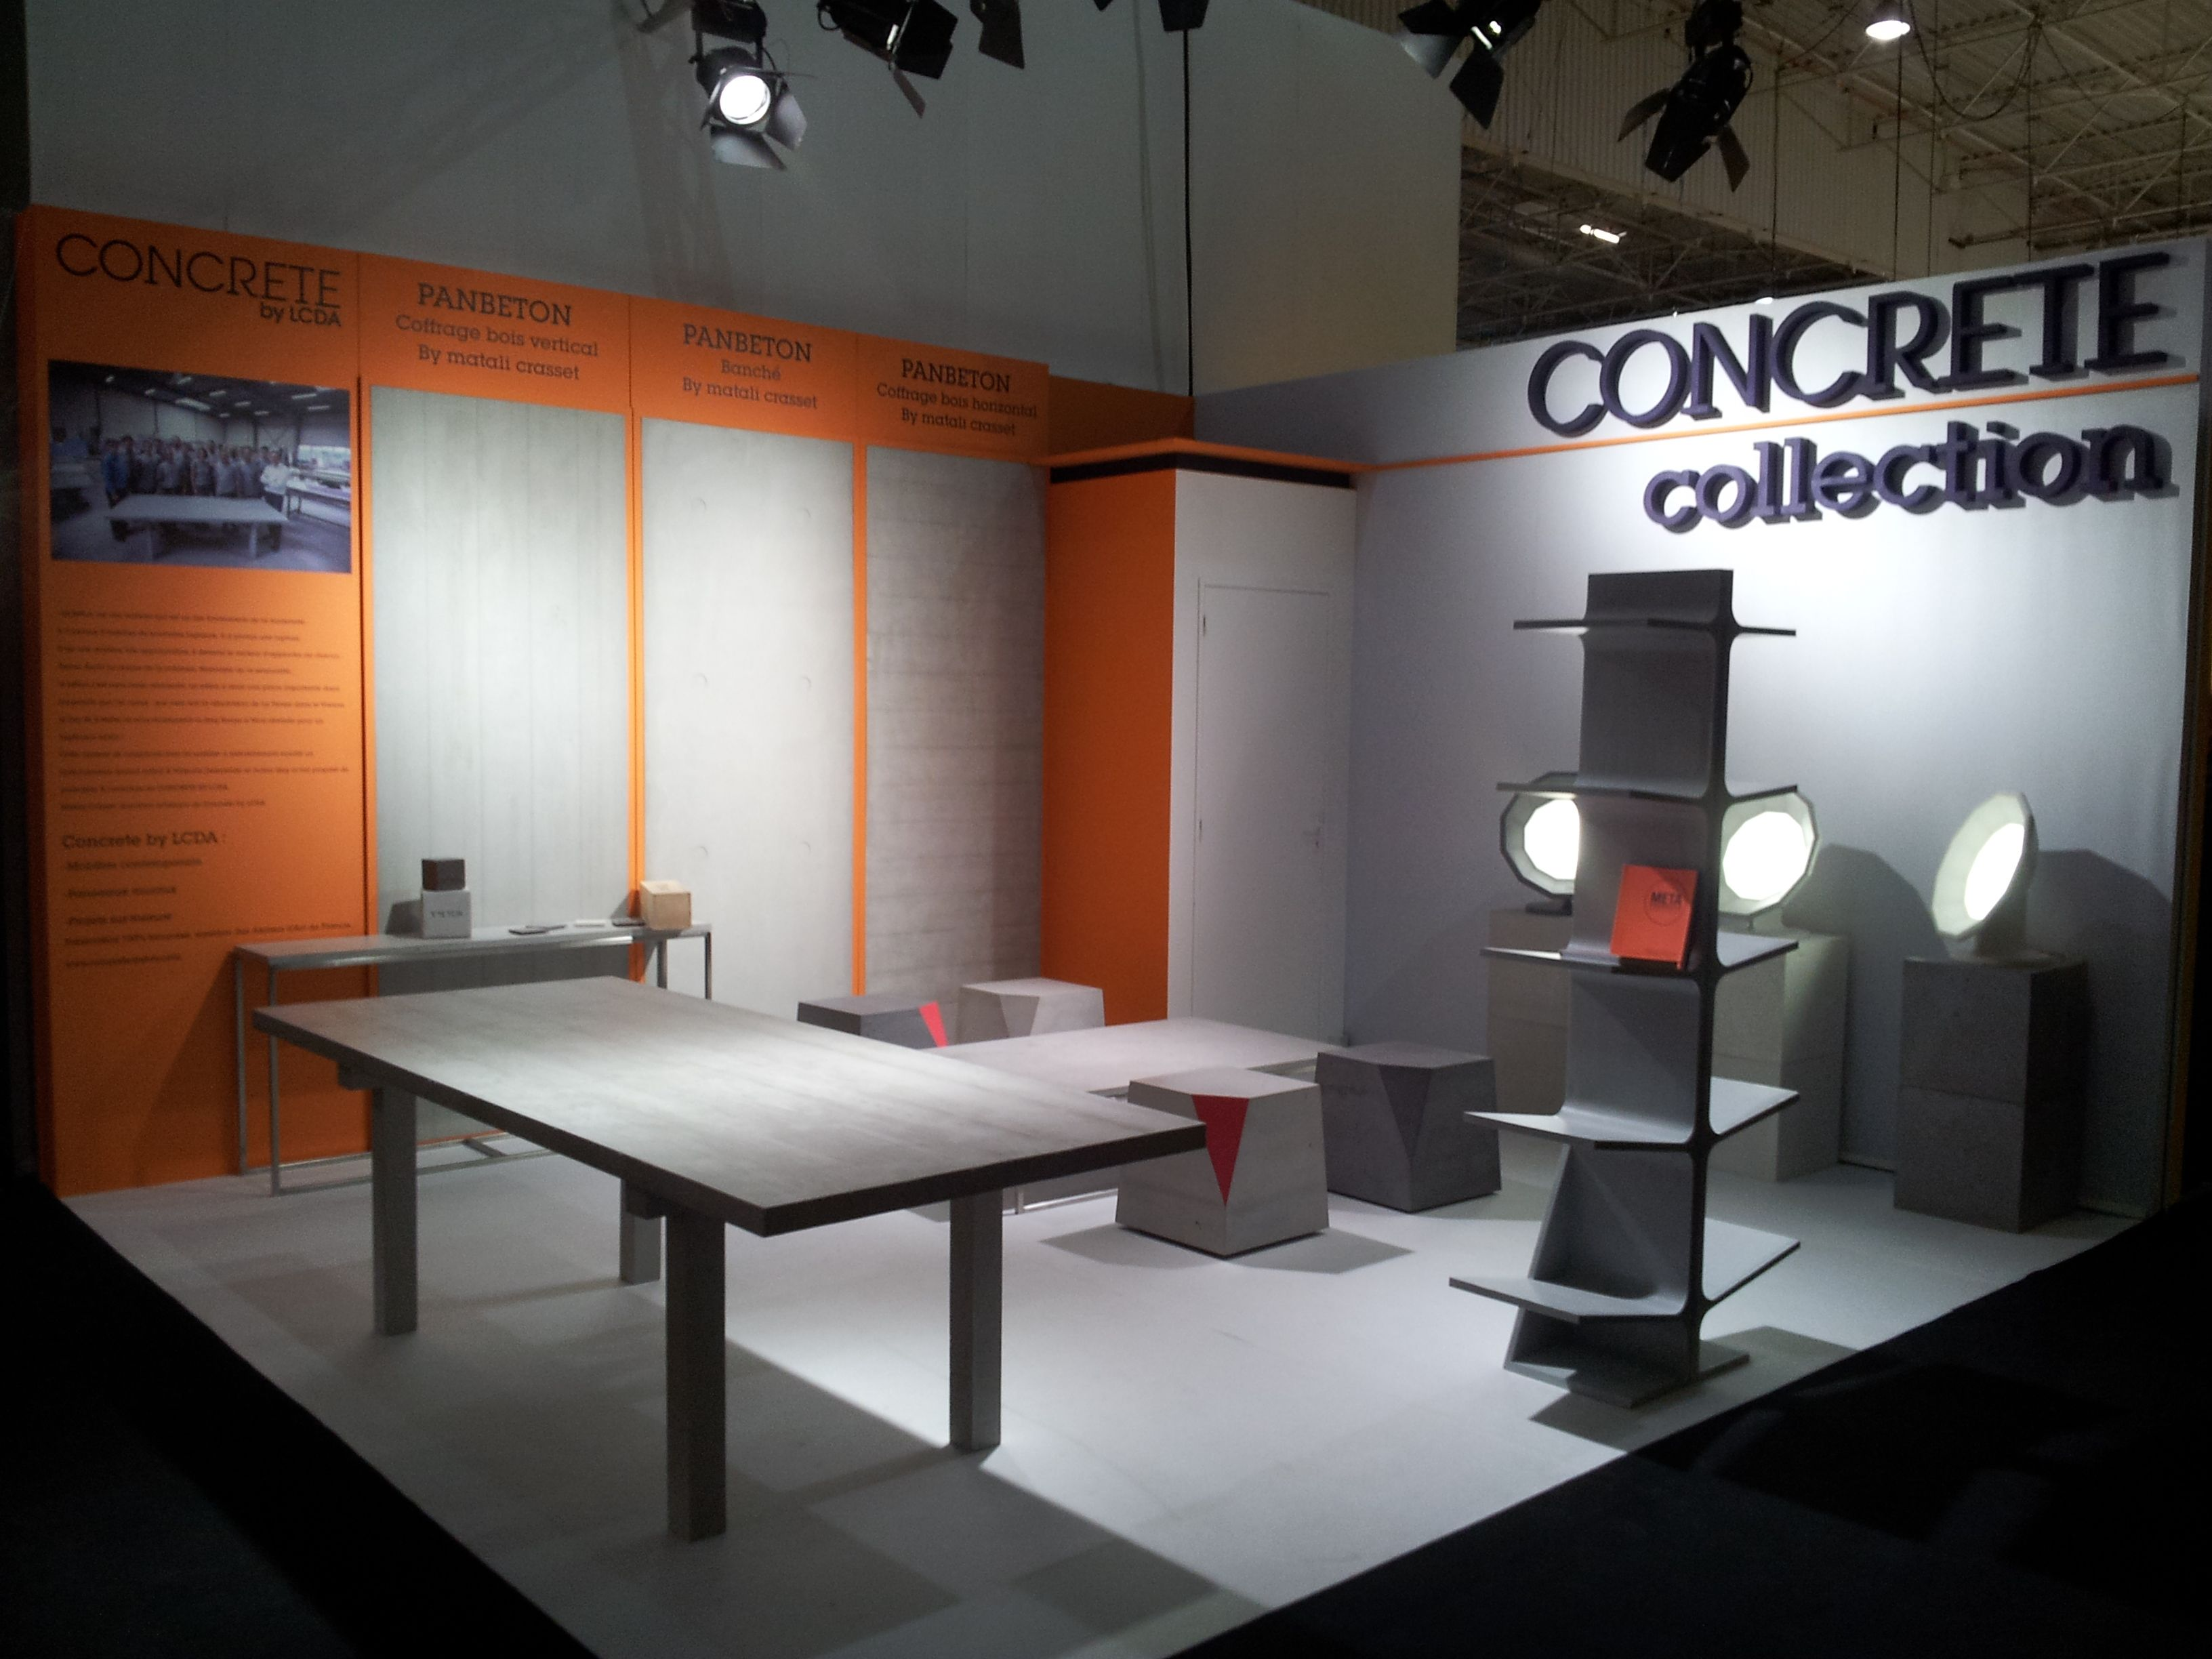 Concrete LCDA at Maison & Objets in January 2013 | CONCRETE panels ...